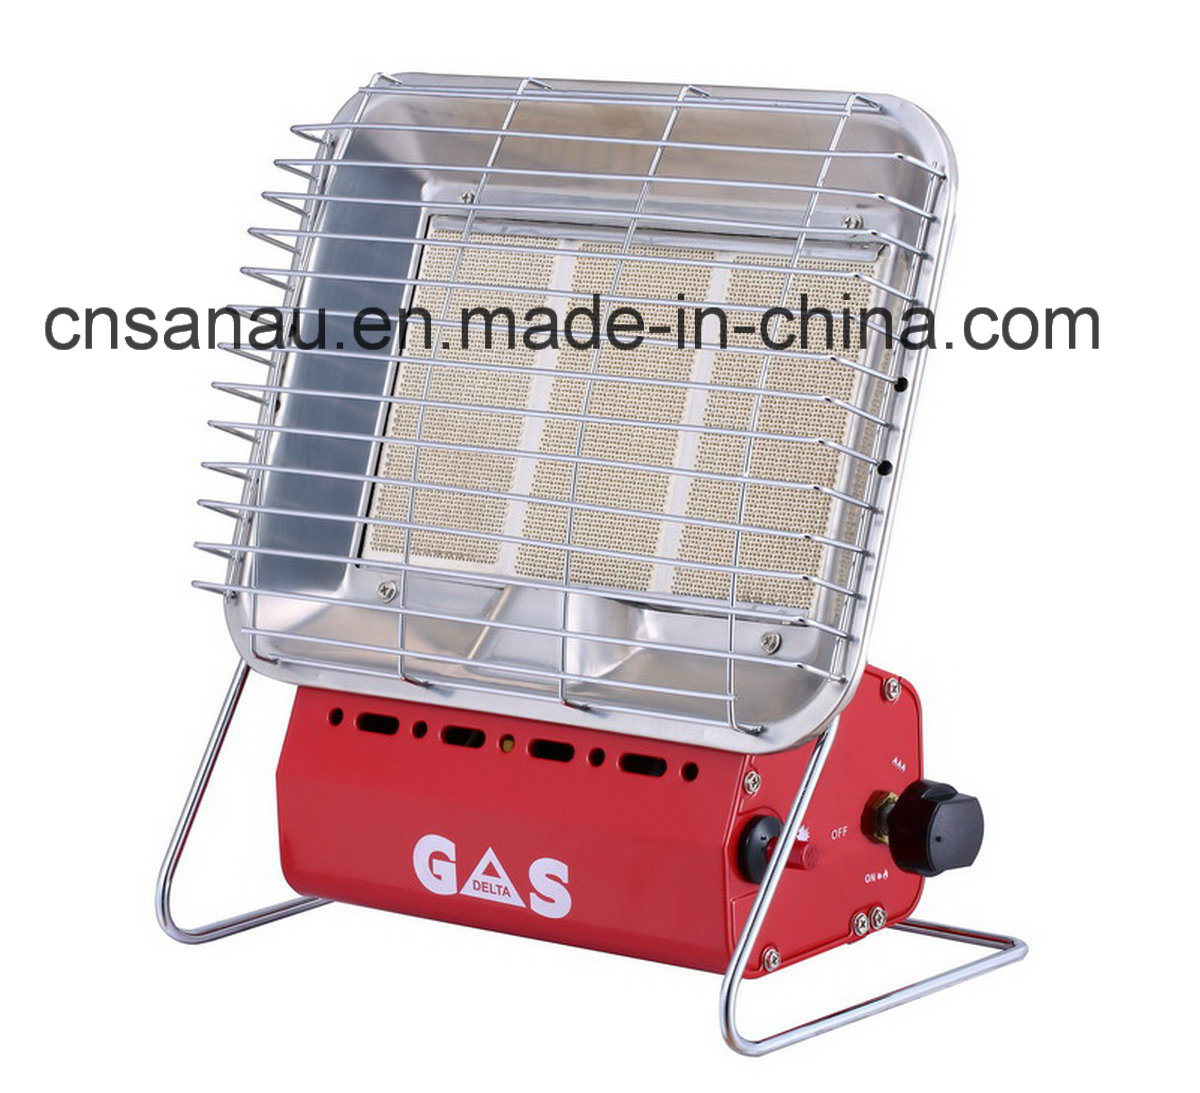 Portable Gas Heater with Ceramic Burner Sn13-Jyt